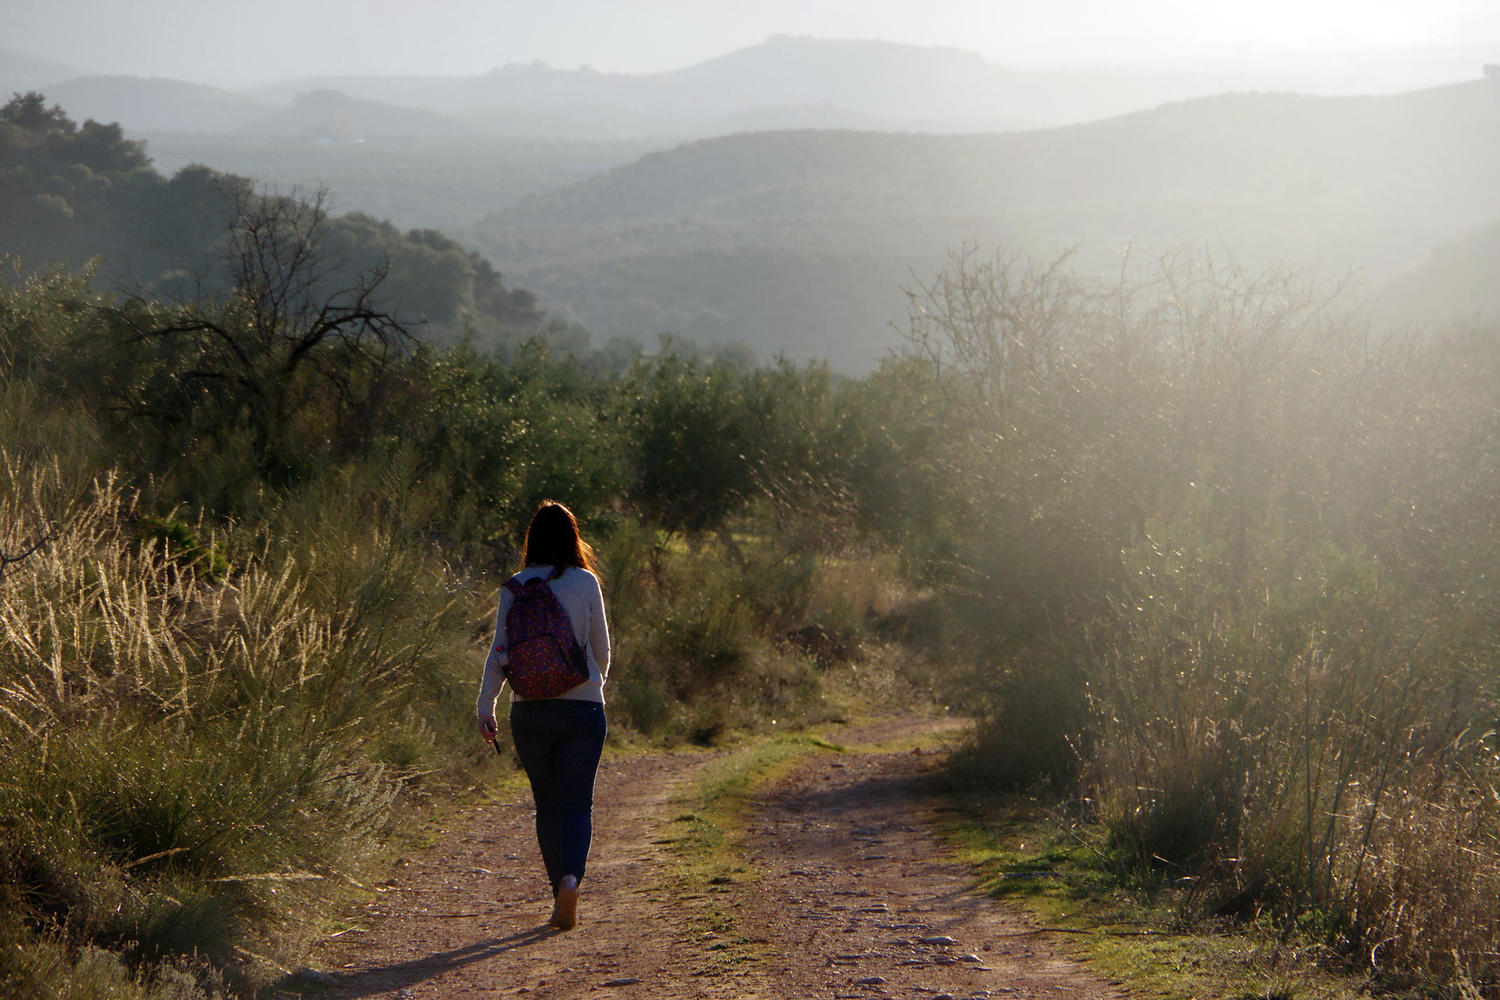 Shadowy outline of distant hills overlooking endless olive groves near Priego de Còrdoba